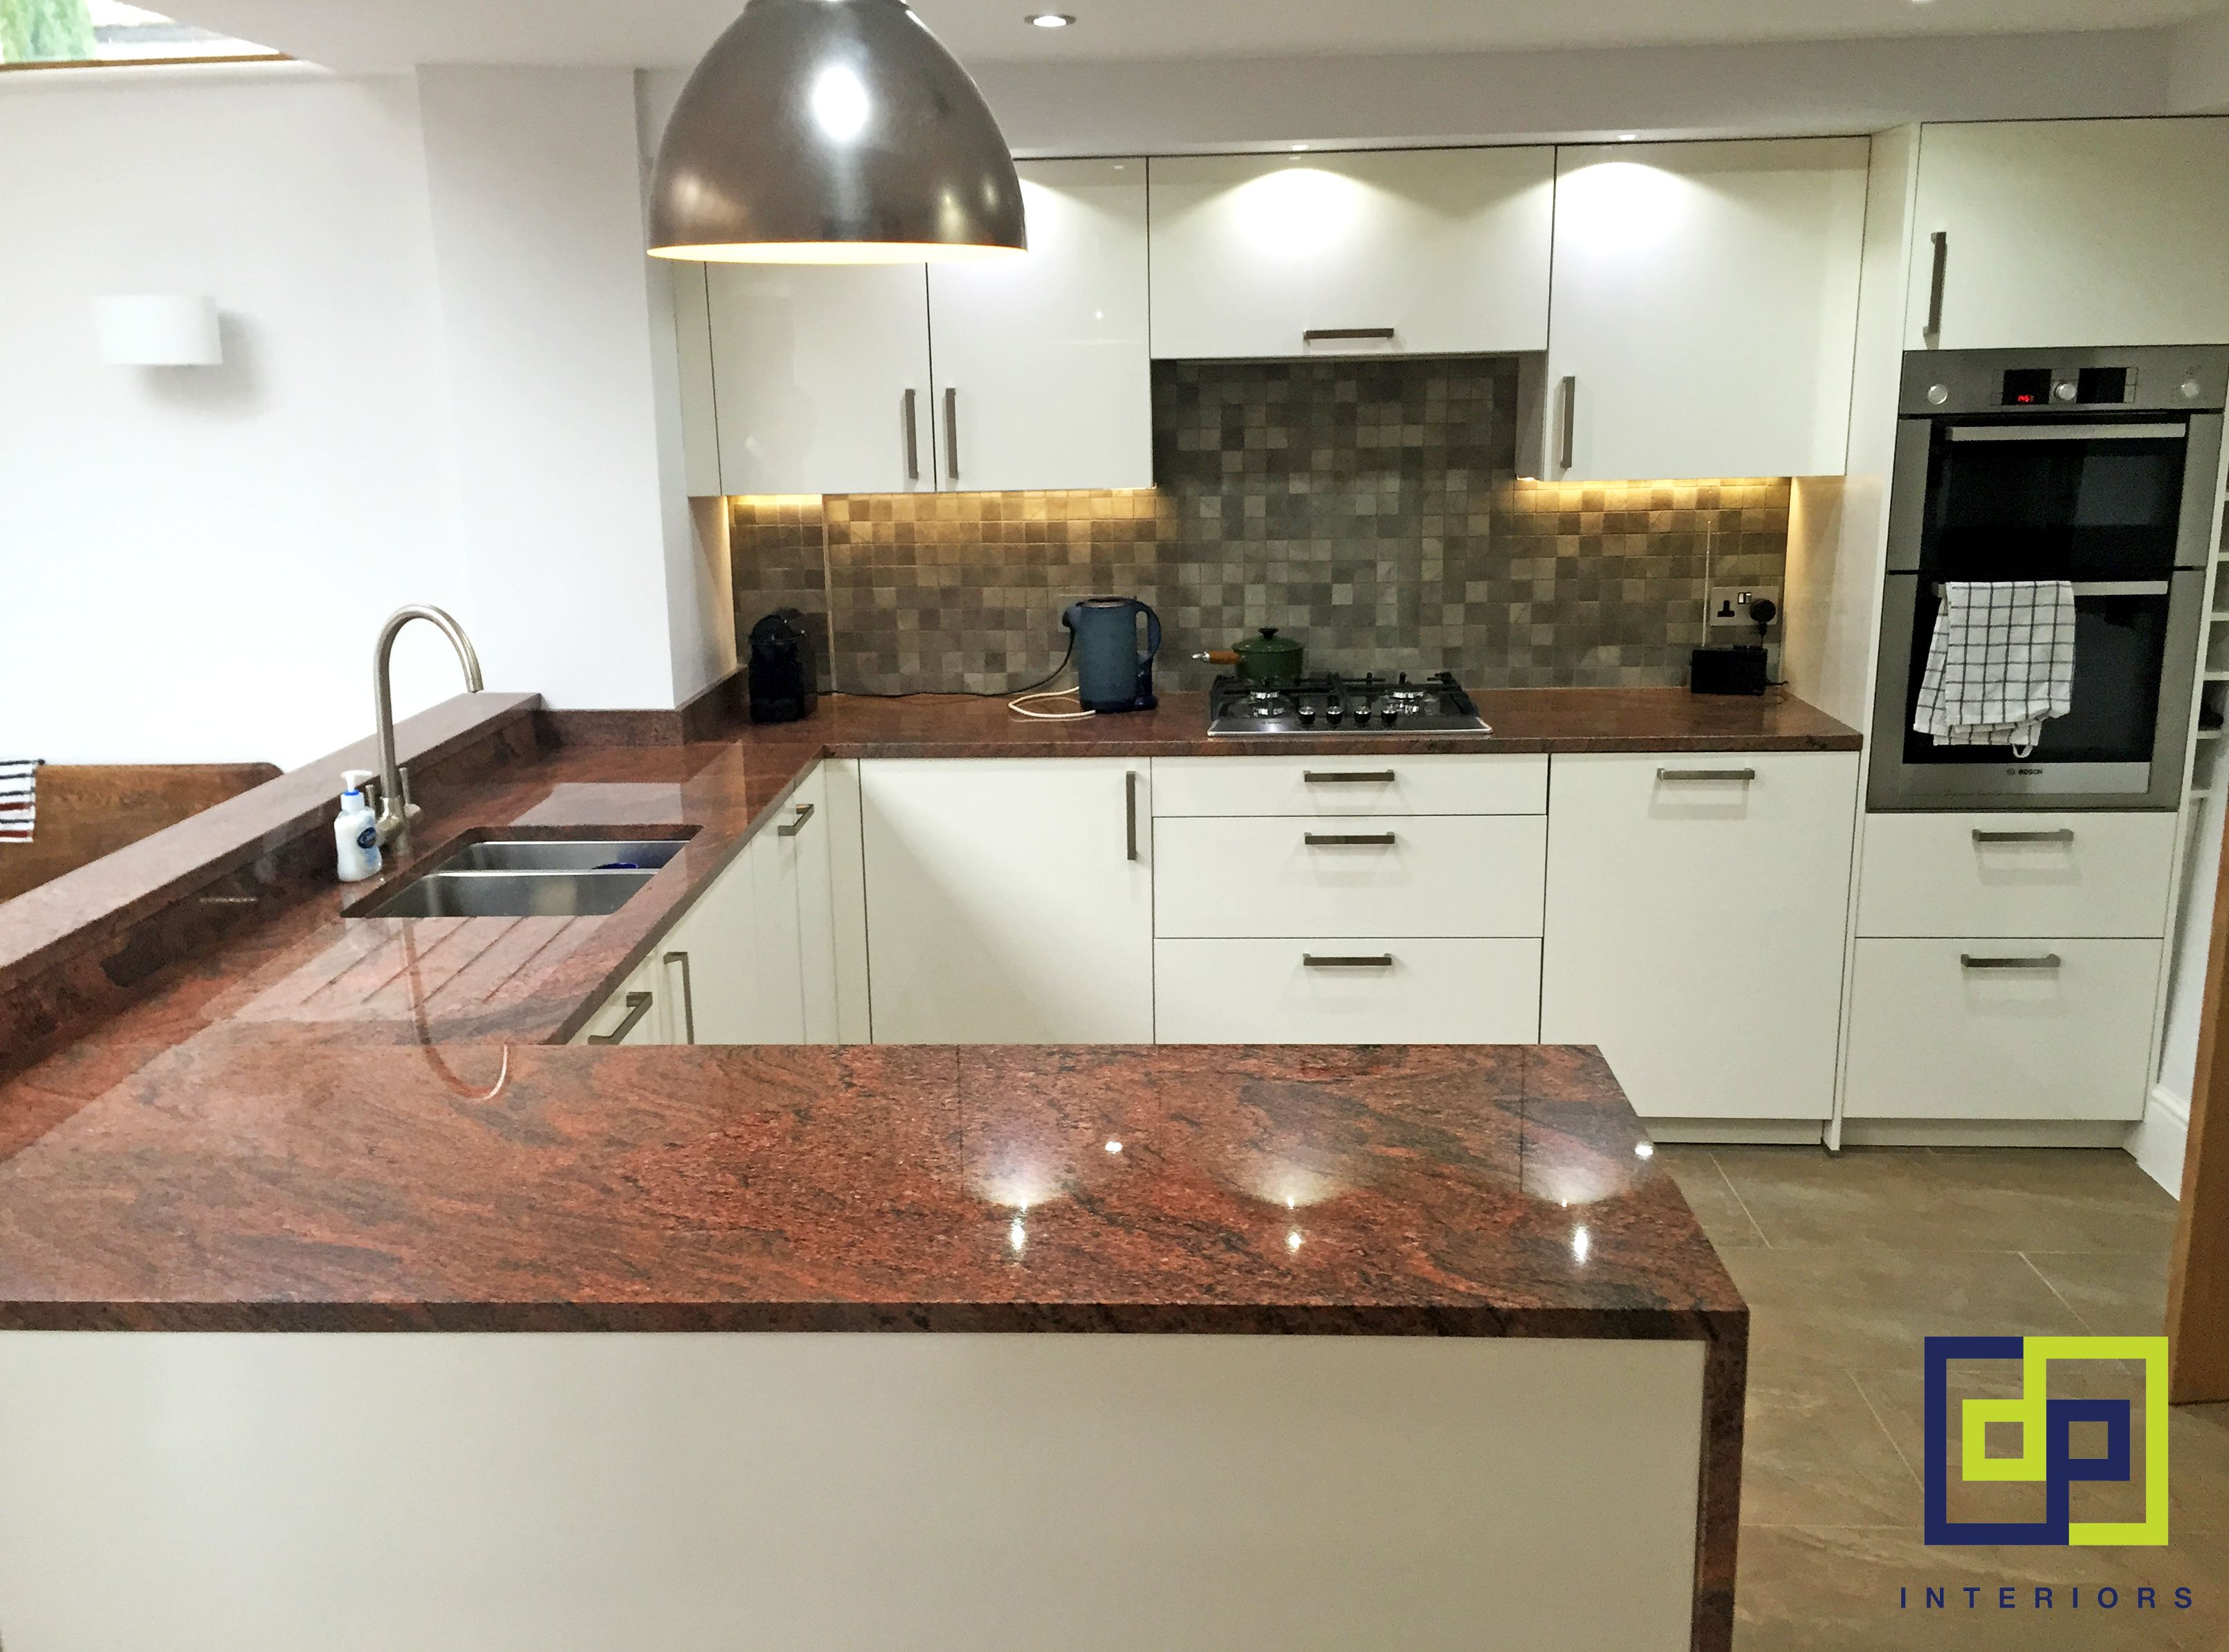 Red Granite Gloss Kitchen Granite Countertops Kitchen Red Granite Countertops Kitchen Countertops